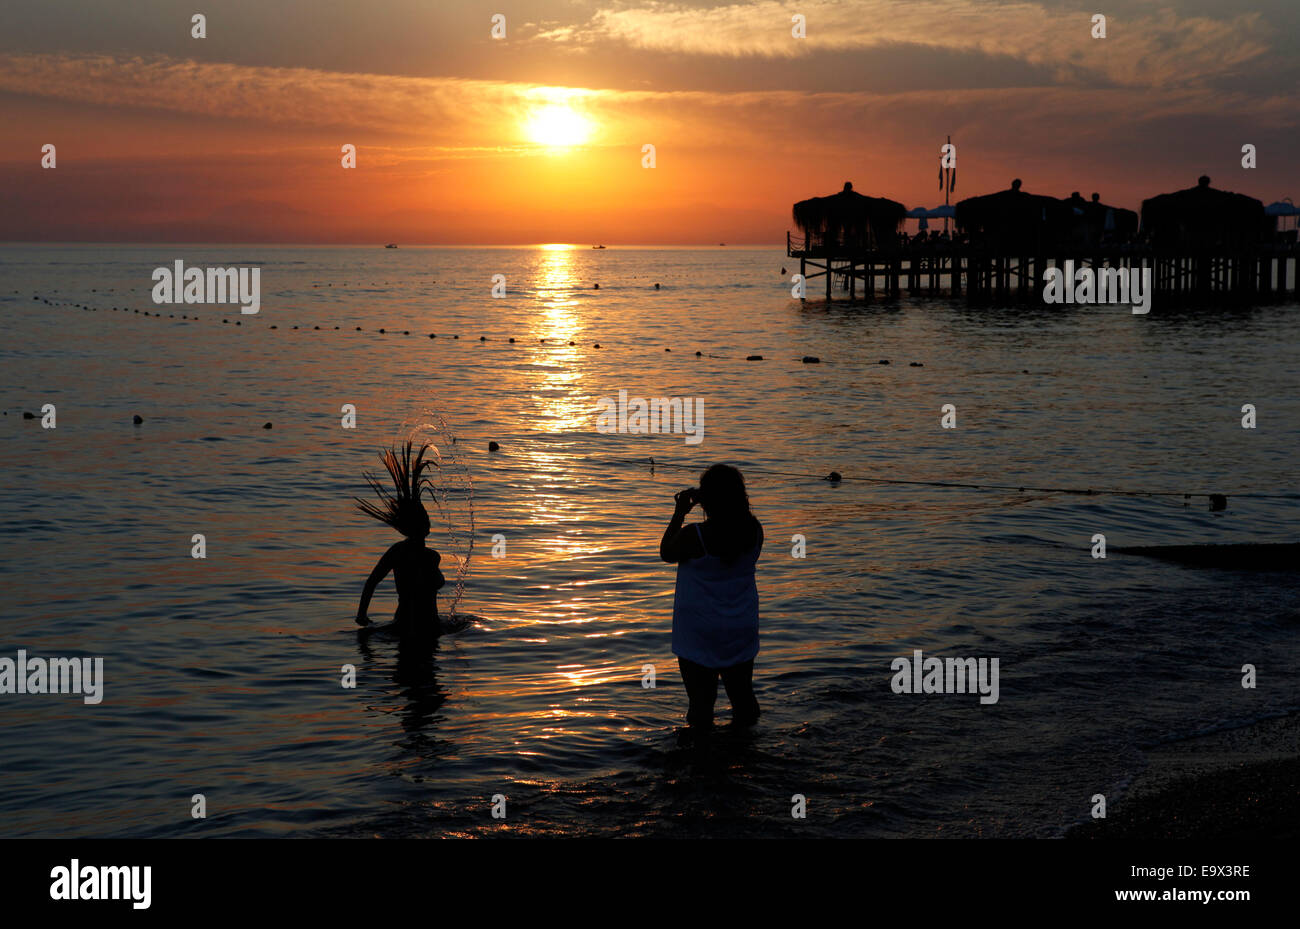 Two young women on the beach at sunset, Manavgat, Antalya, Turkey, Asia - Stock Image